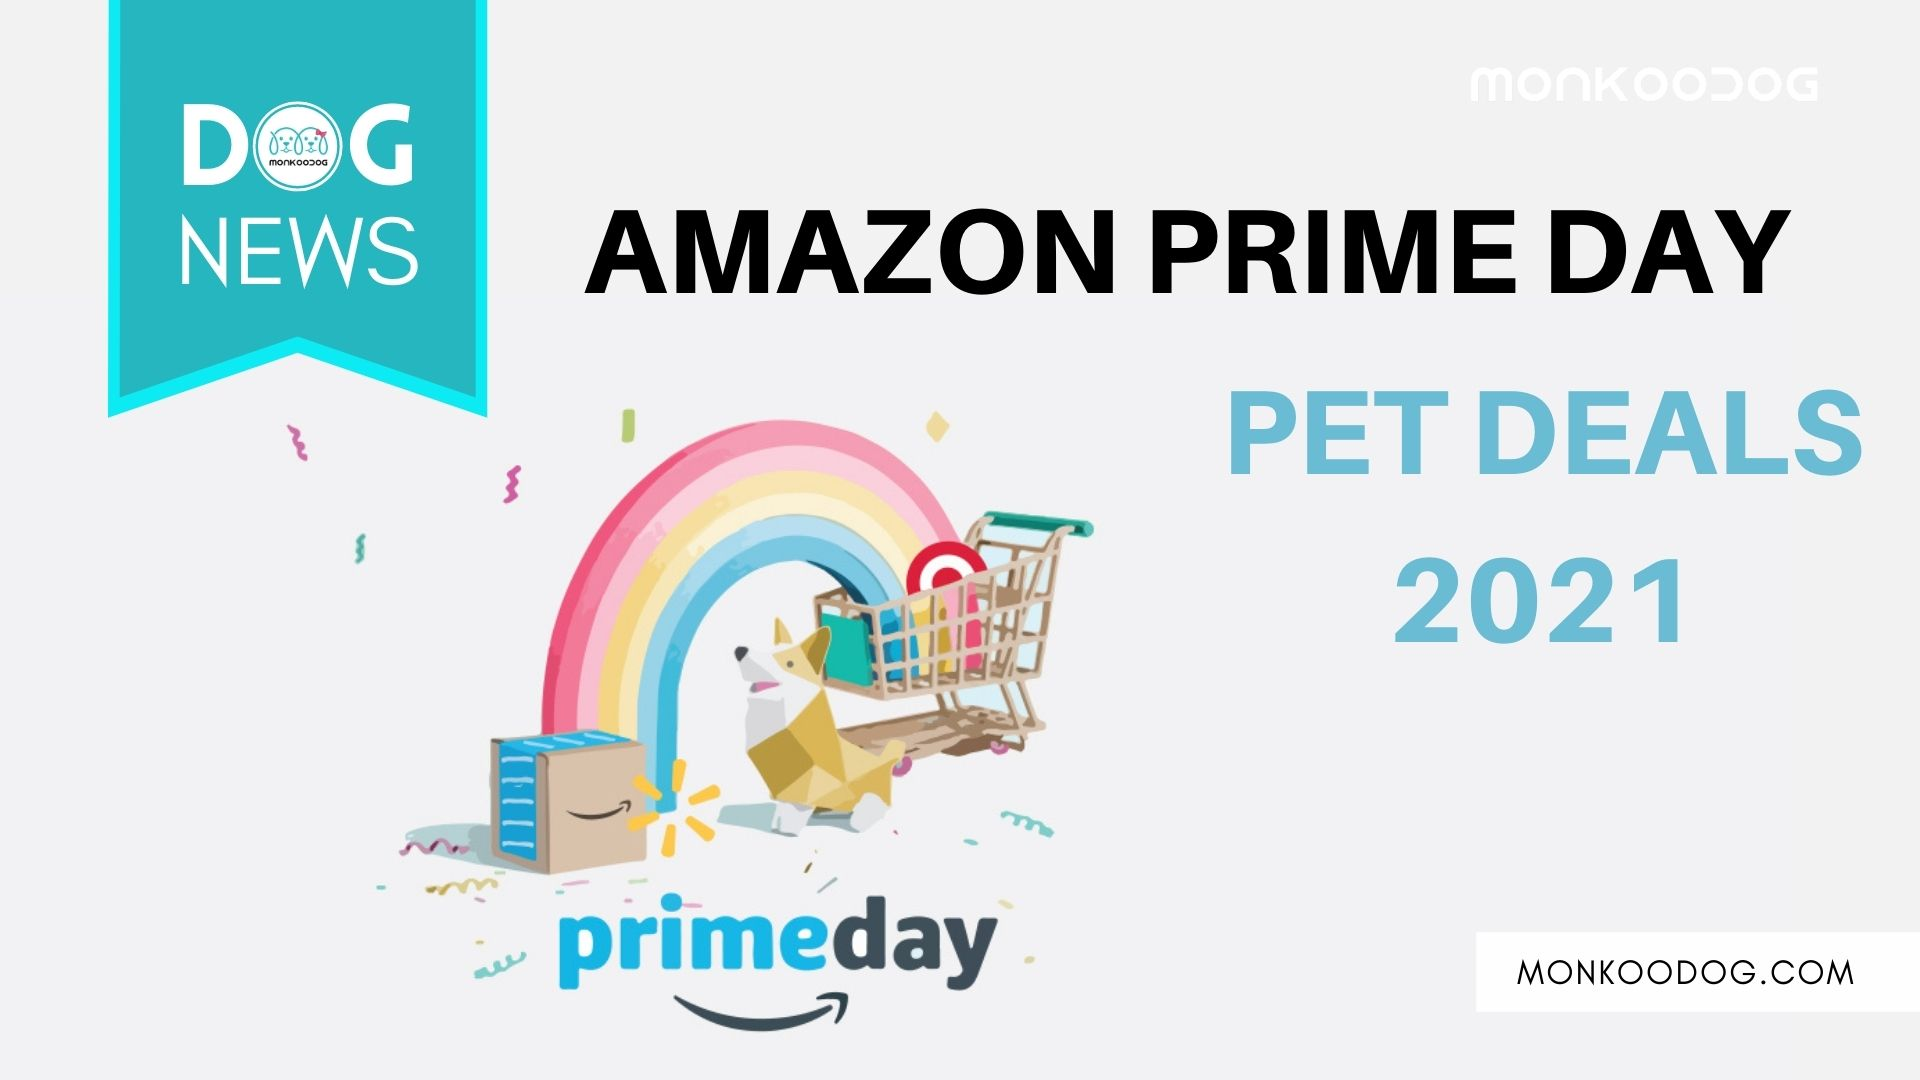 Amazon Prime Day Pet Deal 2021 Is Giving Offers On Dog Products That You Must Buy.